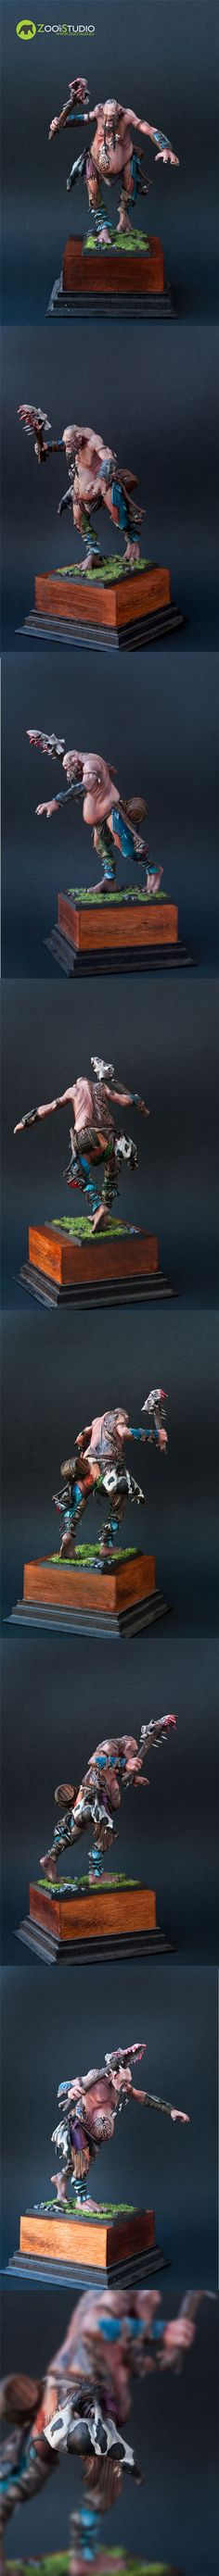 Giant (Games Workshop)  Painted by Doe from Zoo Art Studio